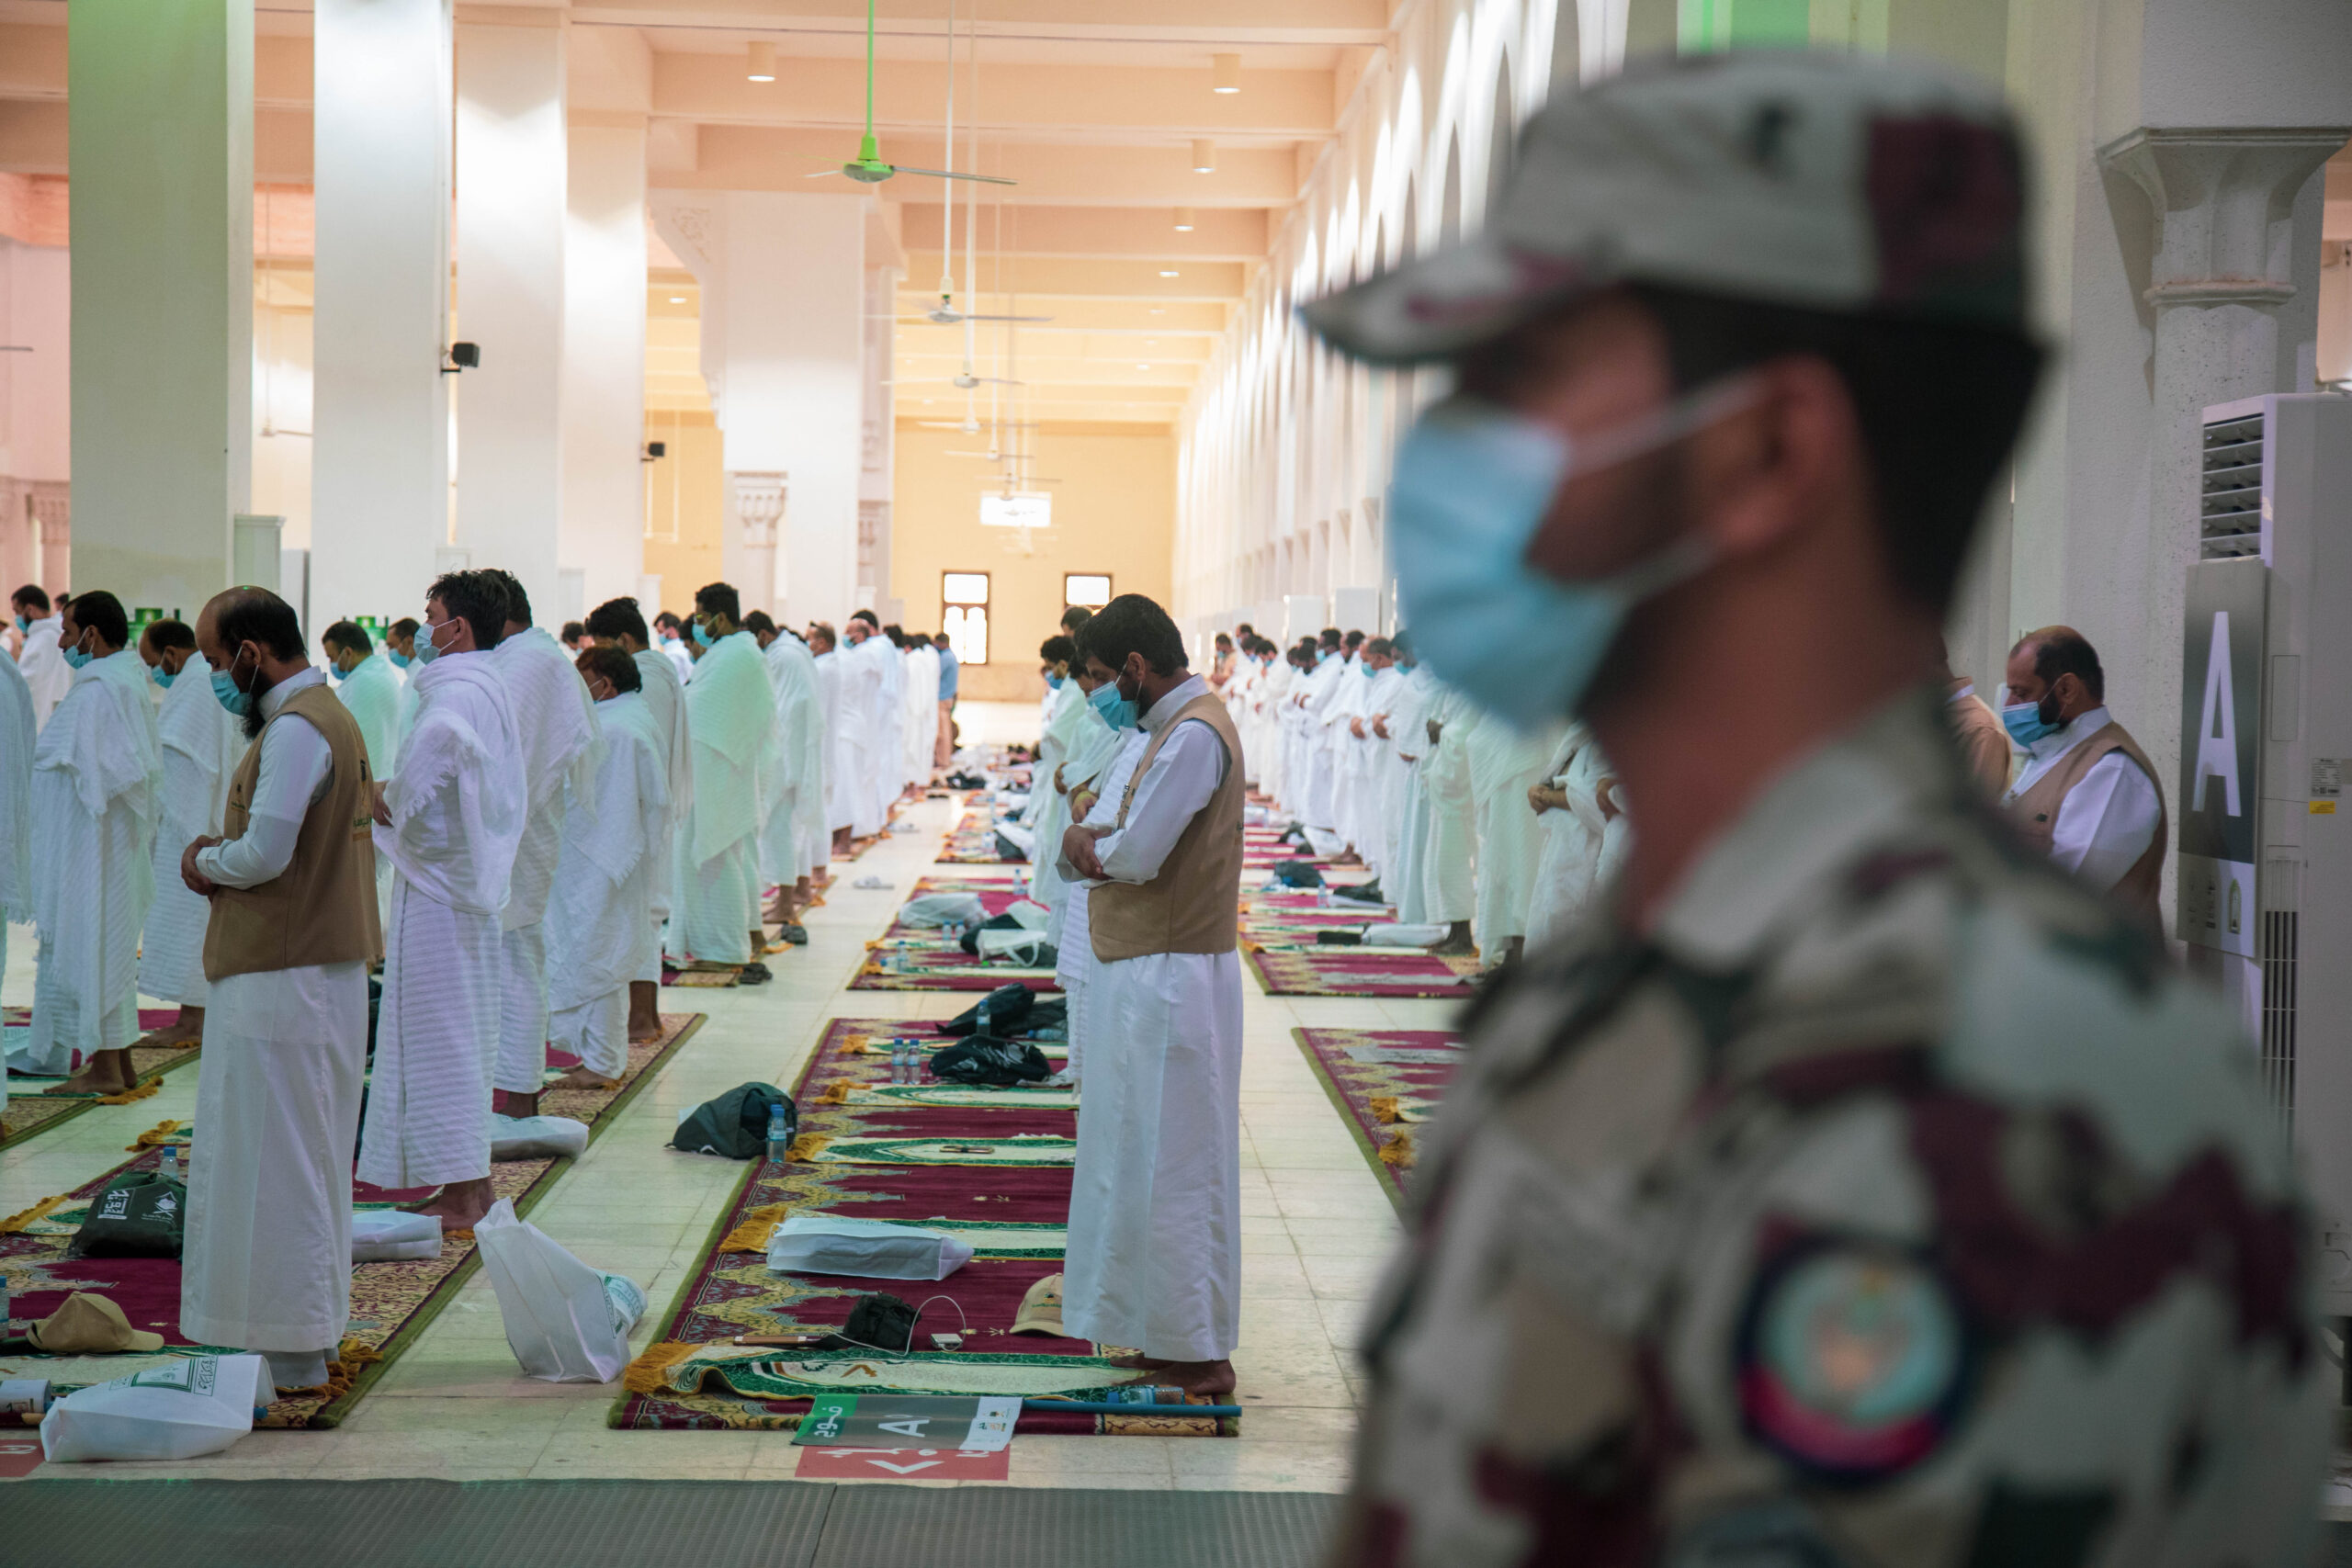 Hajj1441 - 60,000 personnel serve pilgrims from 160 countries